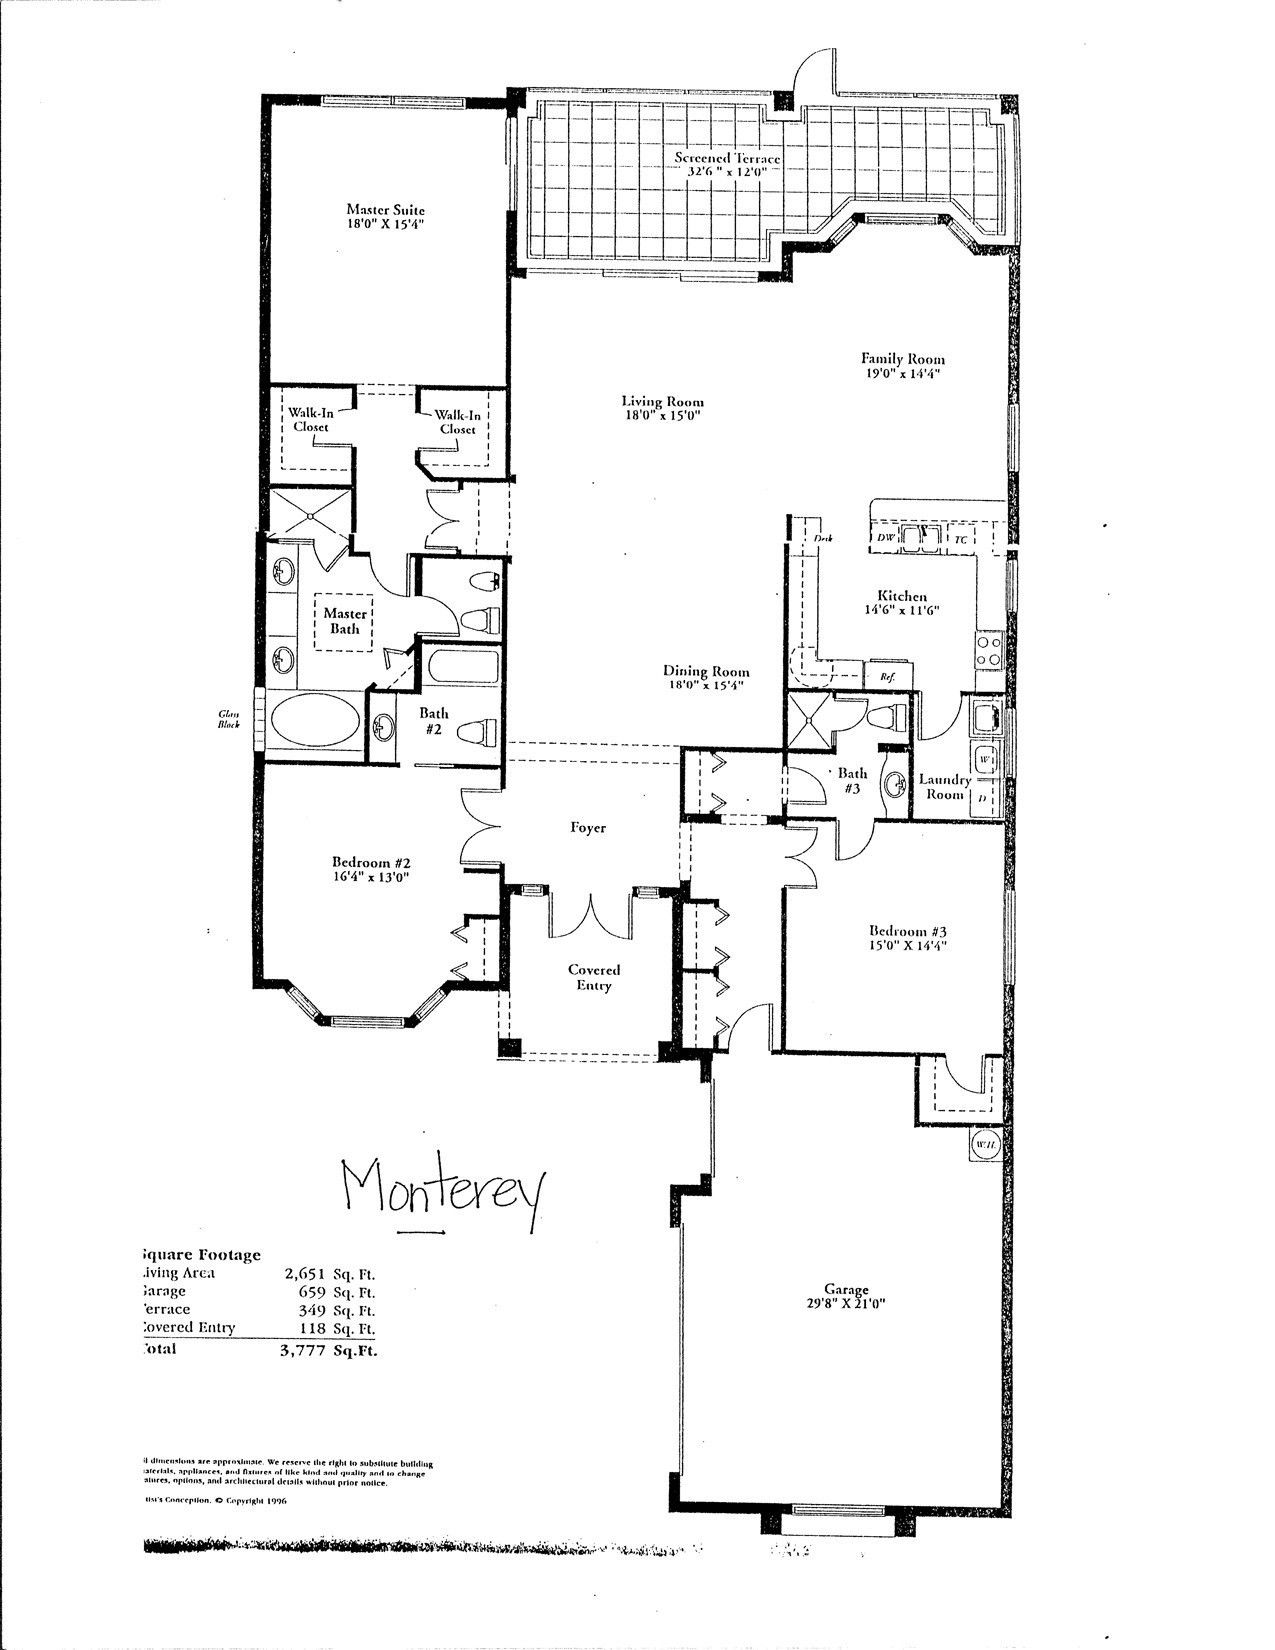 Best Home Floor Plans Elegant Floor Plans Best Draft House Plans Best Home Plans 0d Cottage Floor Plans Floor Plan Design Shop House Plans